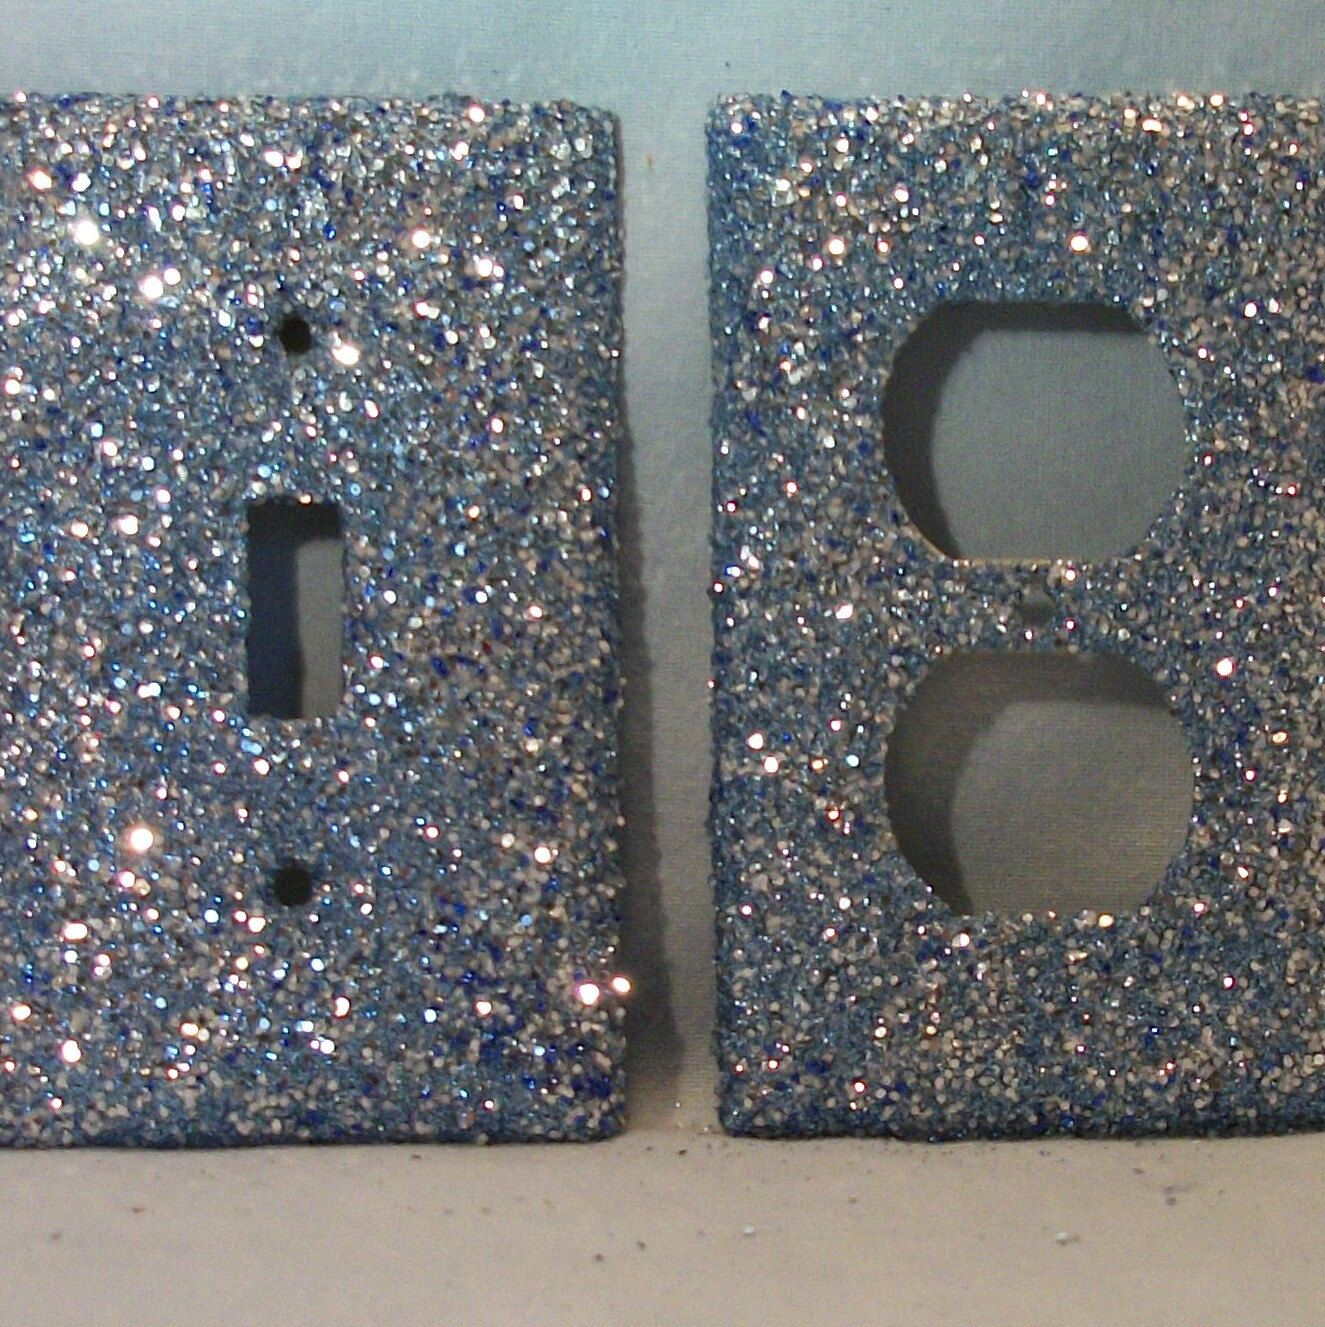 glitter light switch plate! Did this with modge podge and craft glitter 4 months ago on all Kyleigh's switch plates and so far it holds GREAT!  I was worried, it takes 2-3 coats though and make sure to modge podge over the top really well.